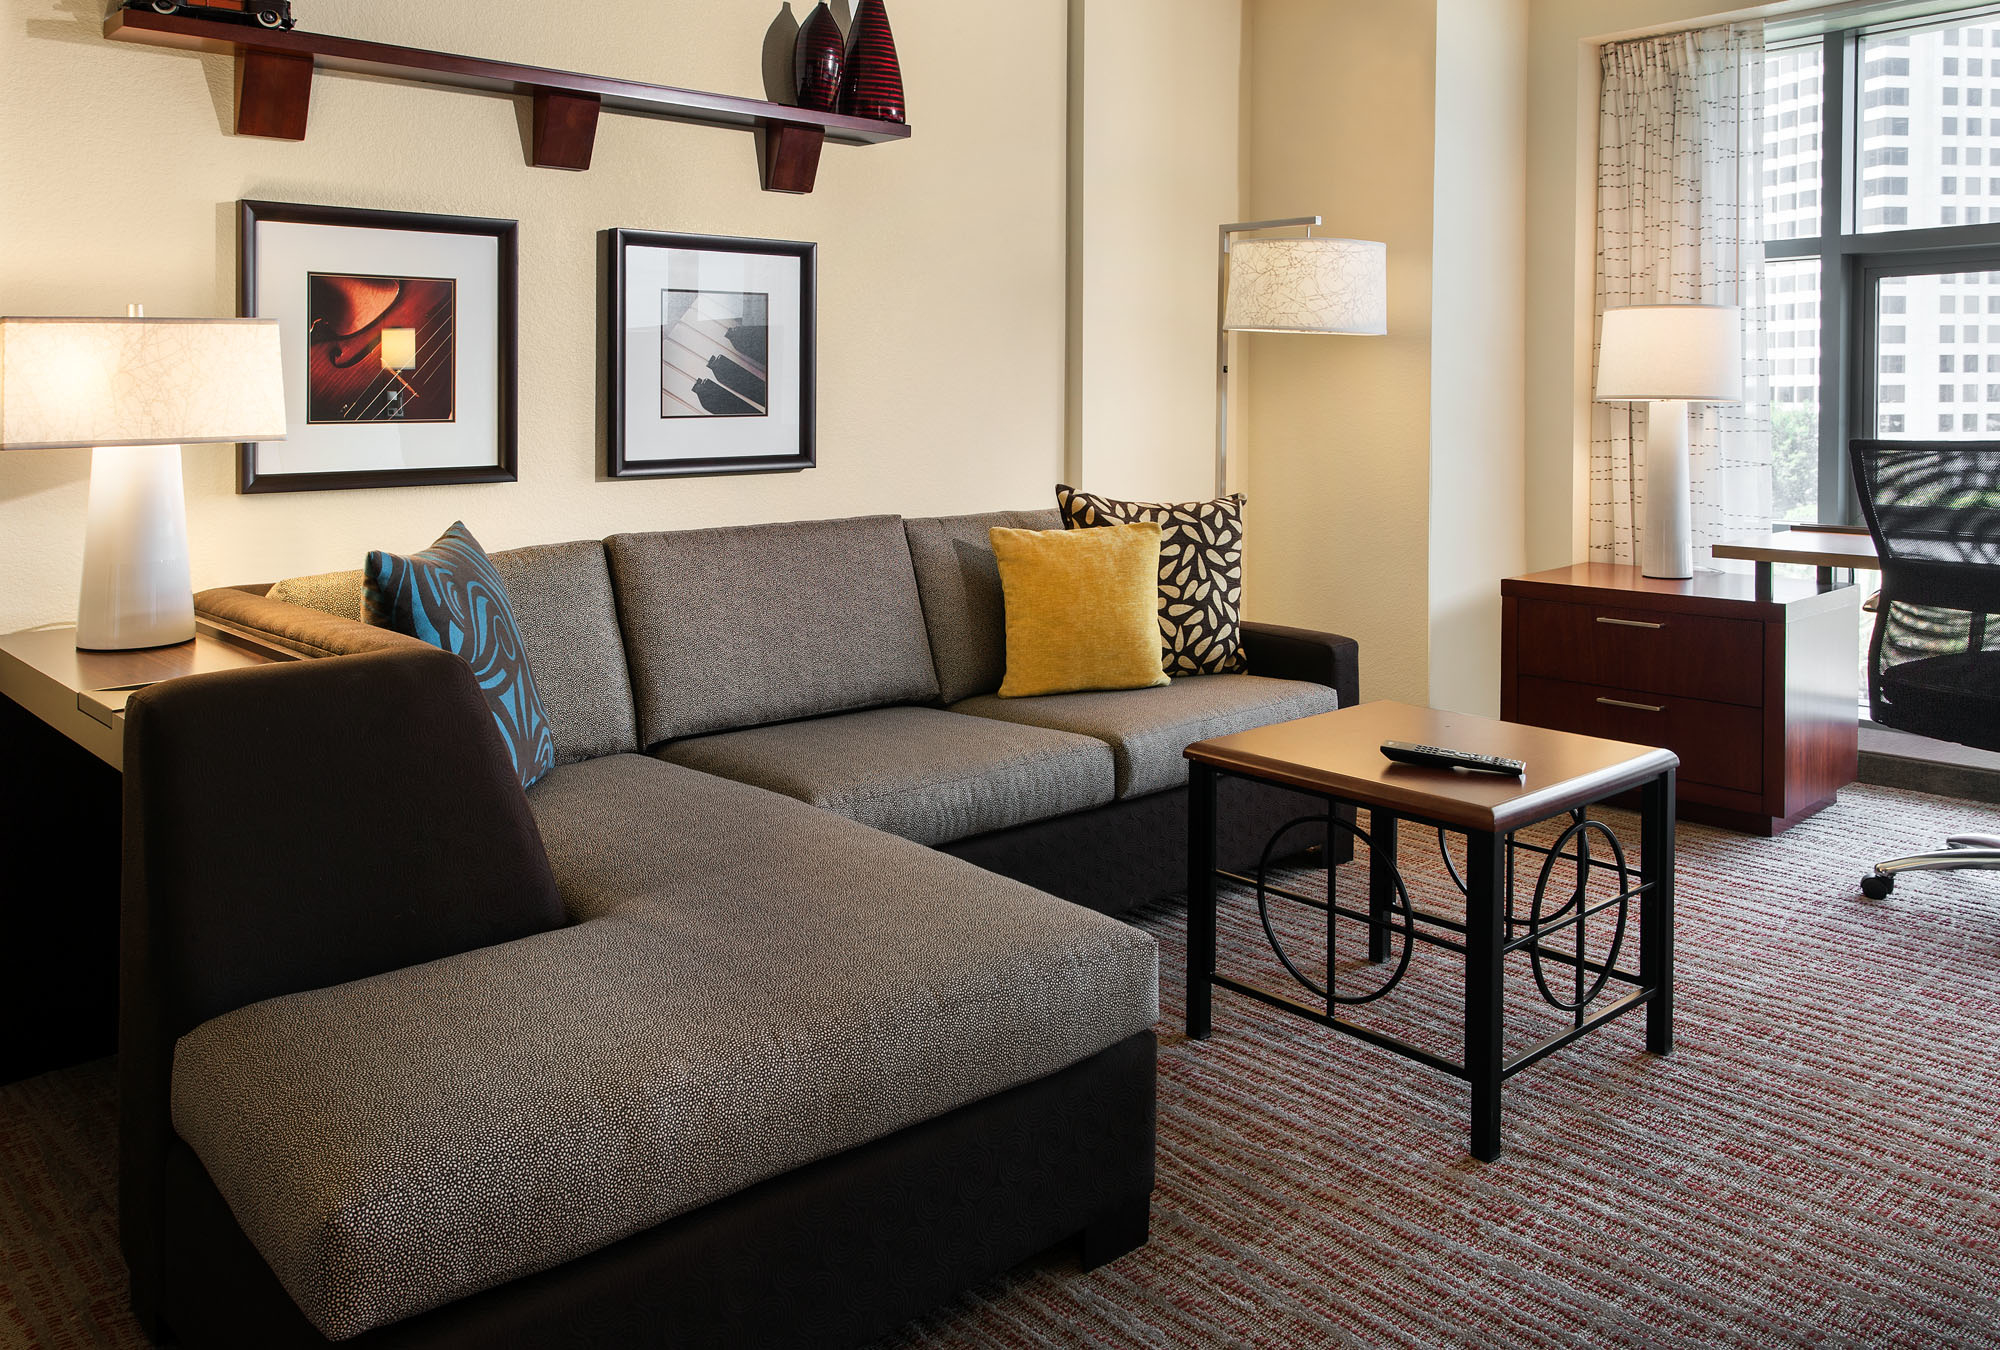 Suite Living Area - Our spacious suites are ideal for the business traveler, with a large well-lit desk, ergonomic chair, and easy-to-reach plugs and data port. Each suite also features a fully equipped kitchen and comfortable living area.